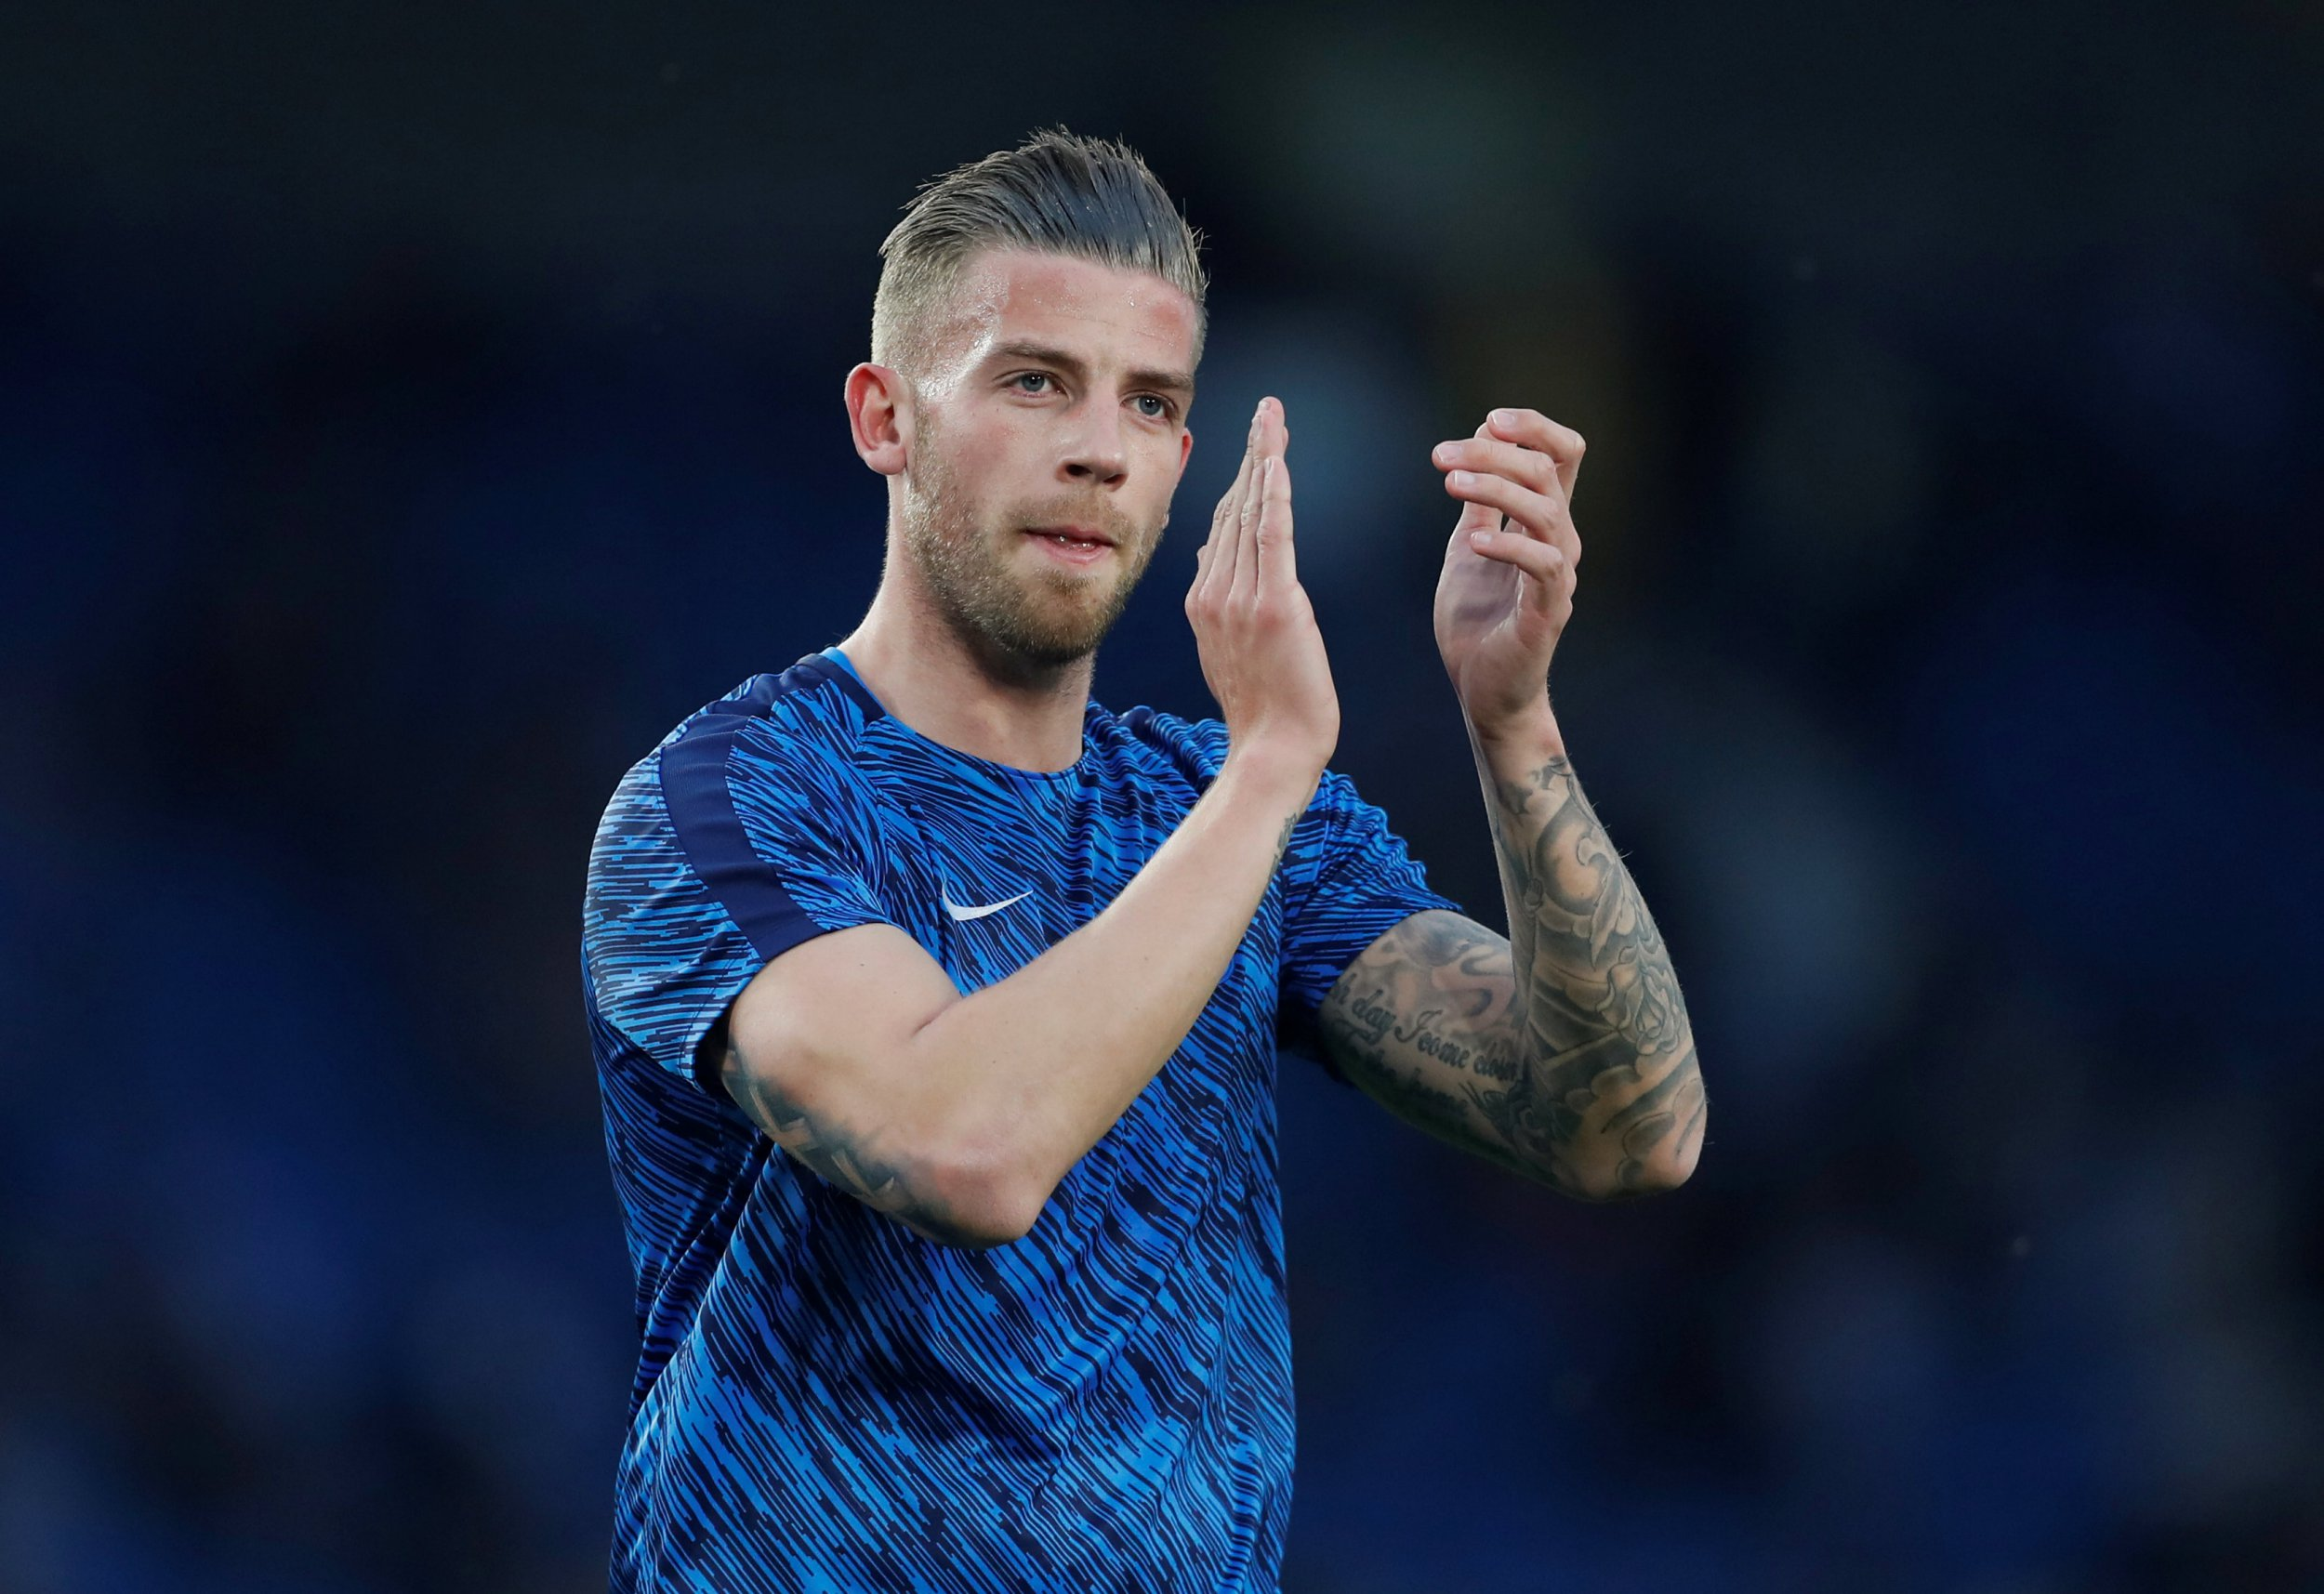 """Soccer Football - Premier League - Brighton & Hove Albion vs Tottenham Hotspur - The American Express Community Stadium, Brighton, Britain - April 17, 2018 Tottenham's Toby Alderweireld during the warm up before the match Action Images via Reuters/Matthew Childs EDITORIAL USE ONLY. No use with unauthorized audio, video, data, fixture lists, club/league logos or """"live"""" services. Online in-match use limited to 75 images, no video emulation. No use in betting, games or single club/league/player publications. Please contact your account representative for further details."""